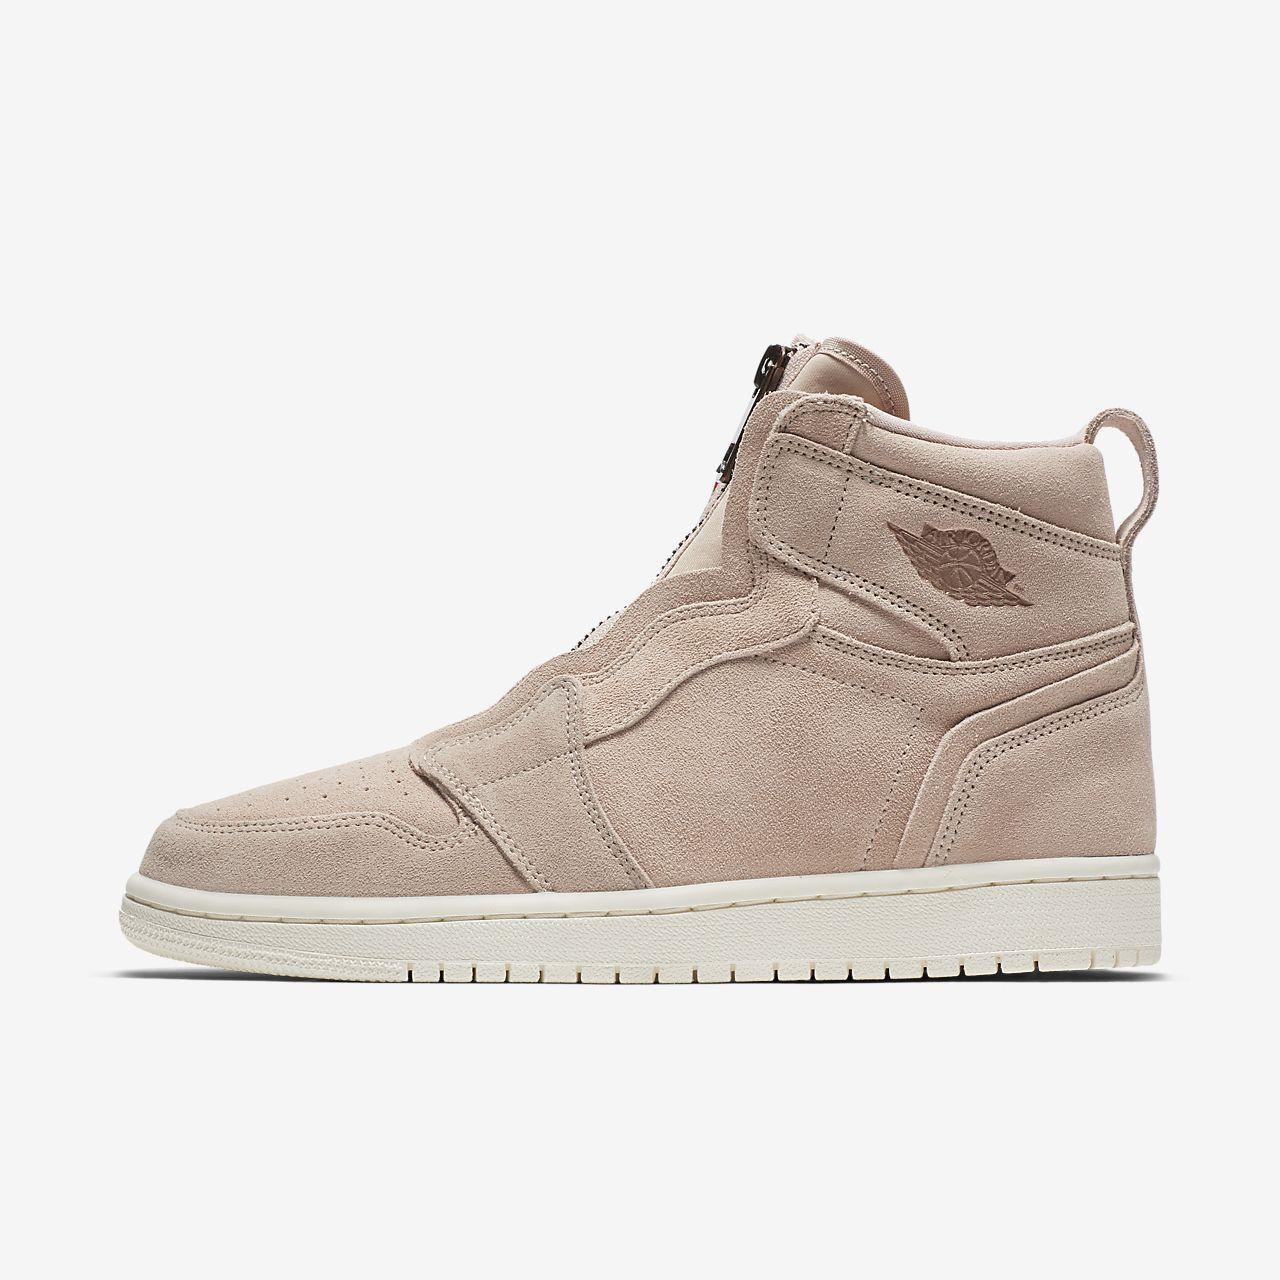 100% guaranteed cheap price outlet JORDAN Retro 1 High Zip Sneaker (Sizes 6-10) PoBtzG1Mm